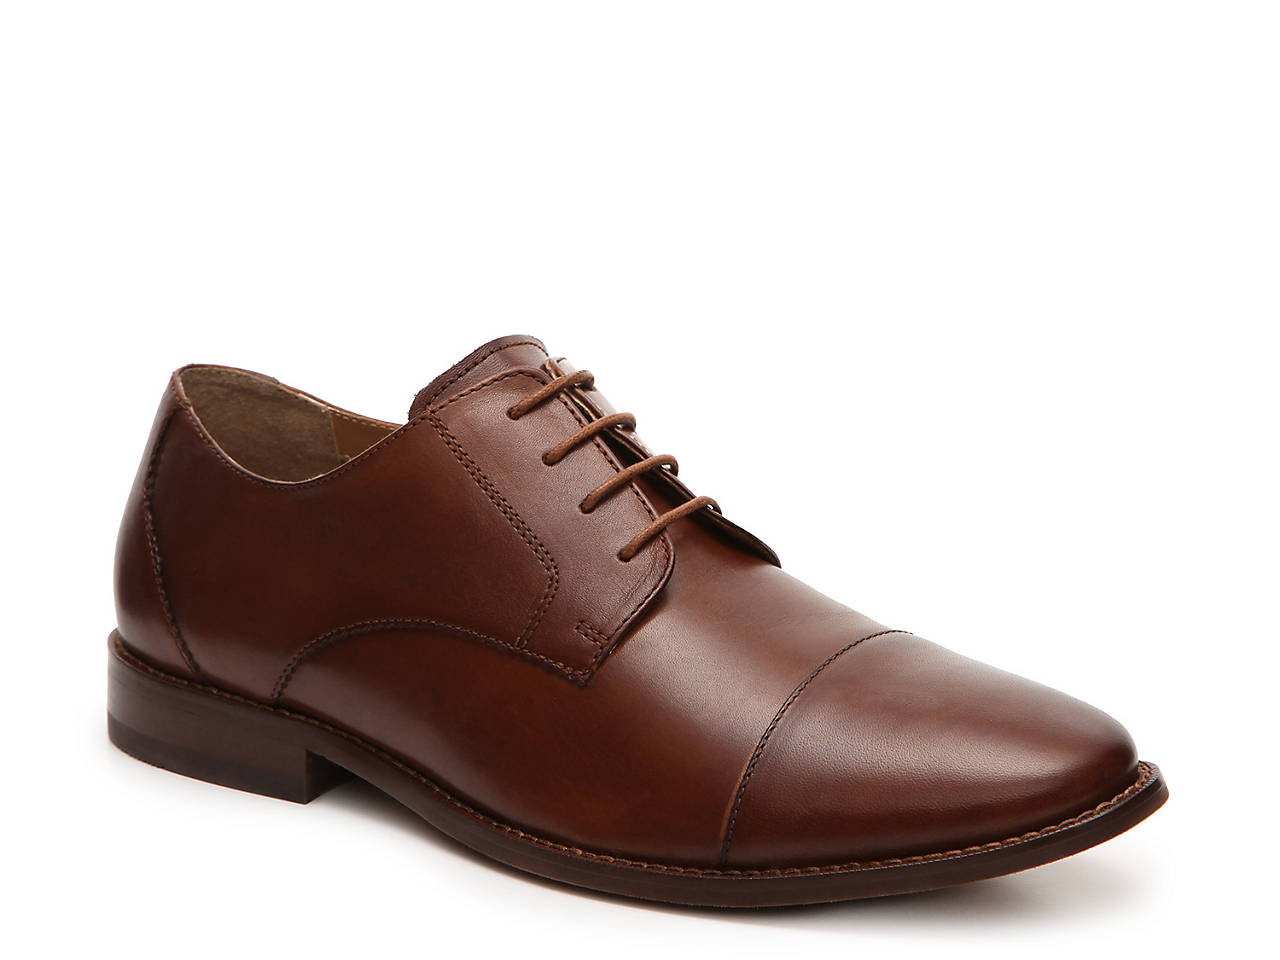 Sale Low Price Fee Shipping Florsheim Finley Cap-Toe Oxford Free Shipping Footlocker Pictures Discount Websites 0VgEmRy6S